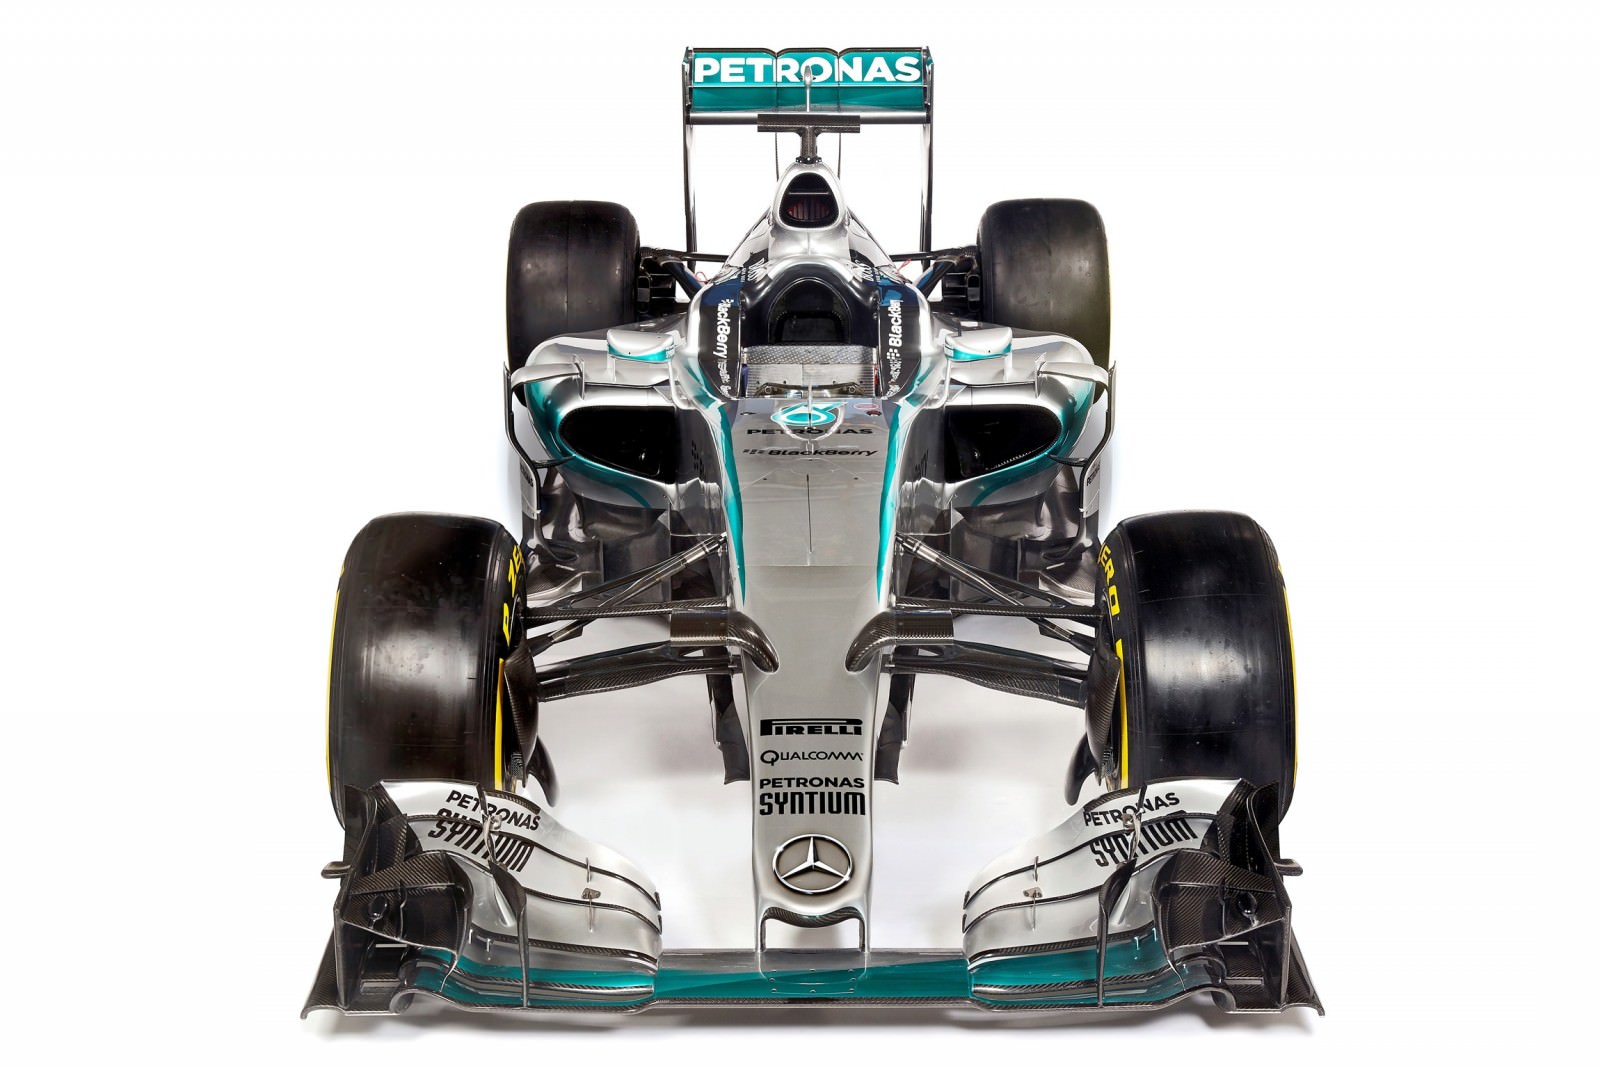 2015 F1 Cars Comparo - Infiniti RB11 vs McLaren-Honda MP4-30 vs AMG W06 vs Ferrari SF15T 39